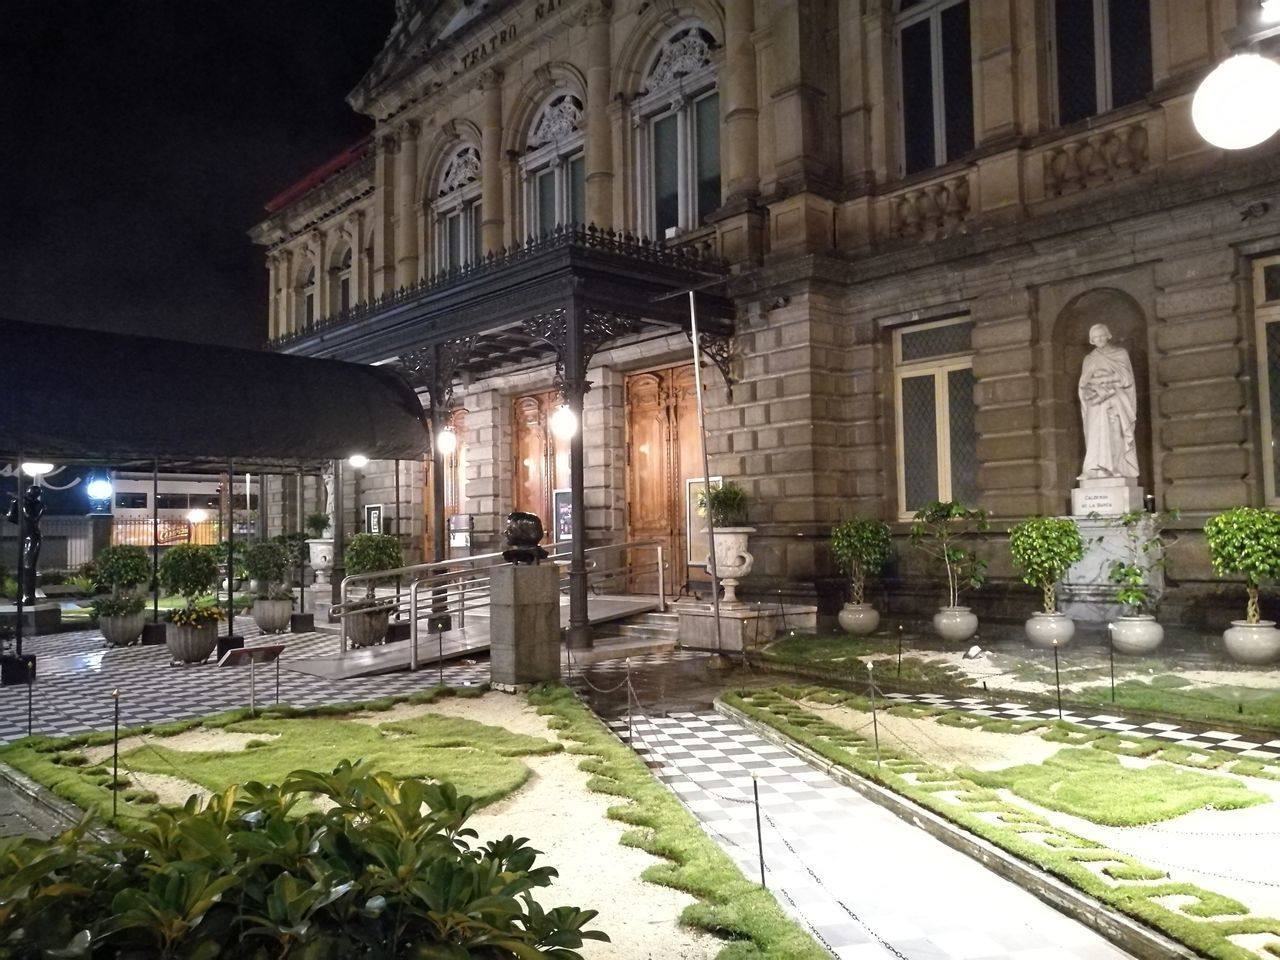 Architecture Night City Illuminated Building Exterior Outdoors No People Facade Building Facadelovers Facades And Light Outdoors Photograpghy  Theatre Of Opera And Ballet Night Photography Concert Hall  No Filter, No Edit, Just Photography Business Finance And Industry Tourism City Travel Destinations Night View Night Lights Architecture Teatro Nacional National Theater at San Jose, Costa Rica